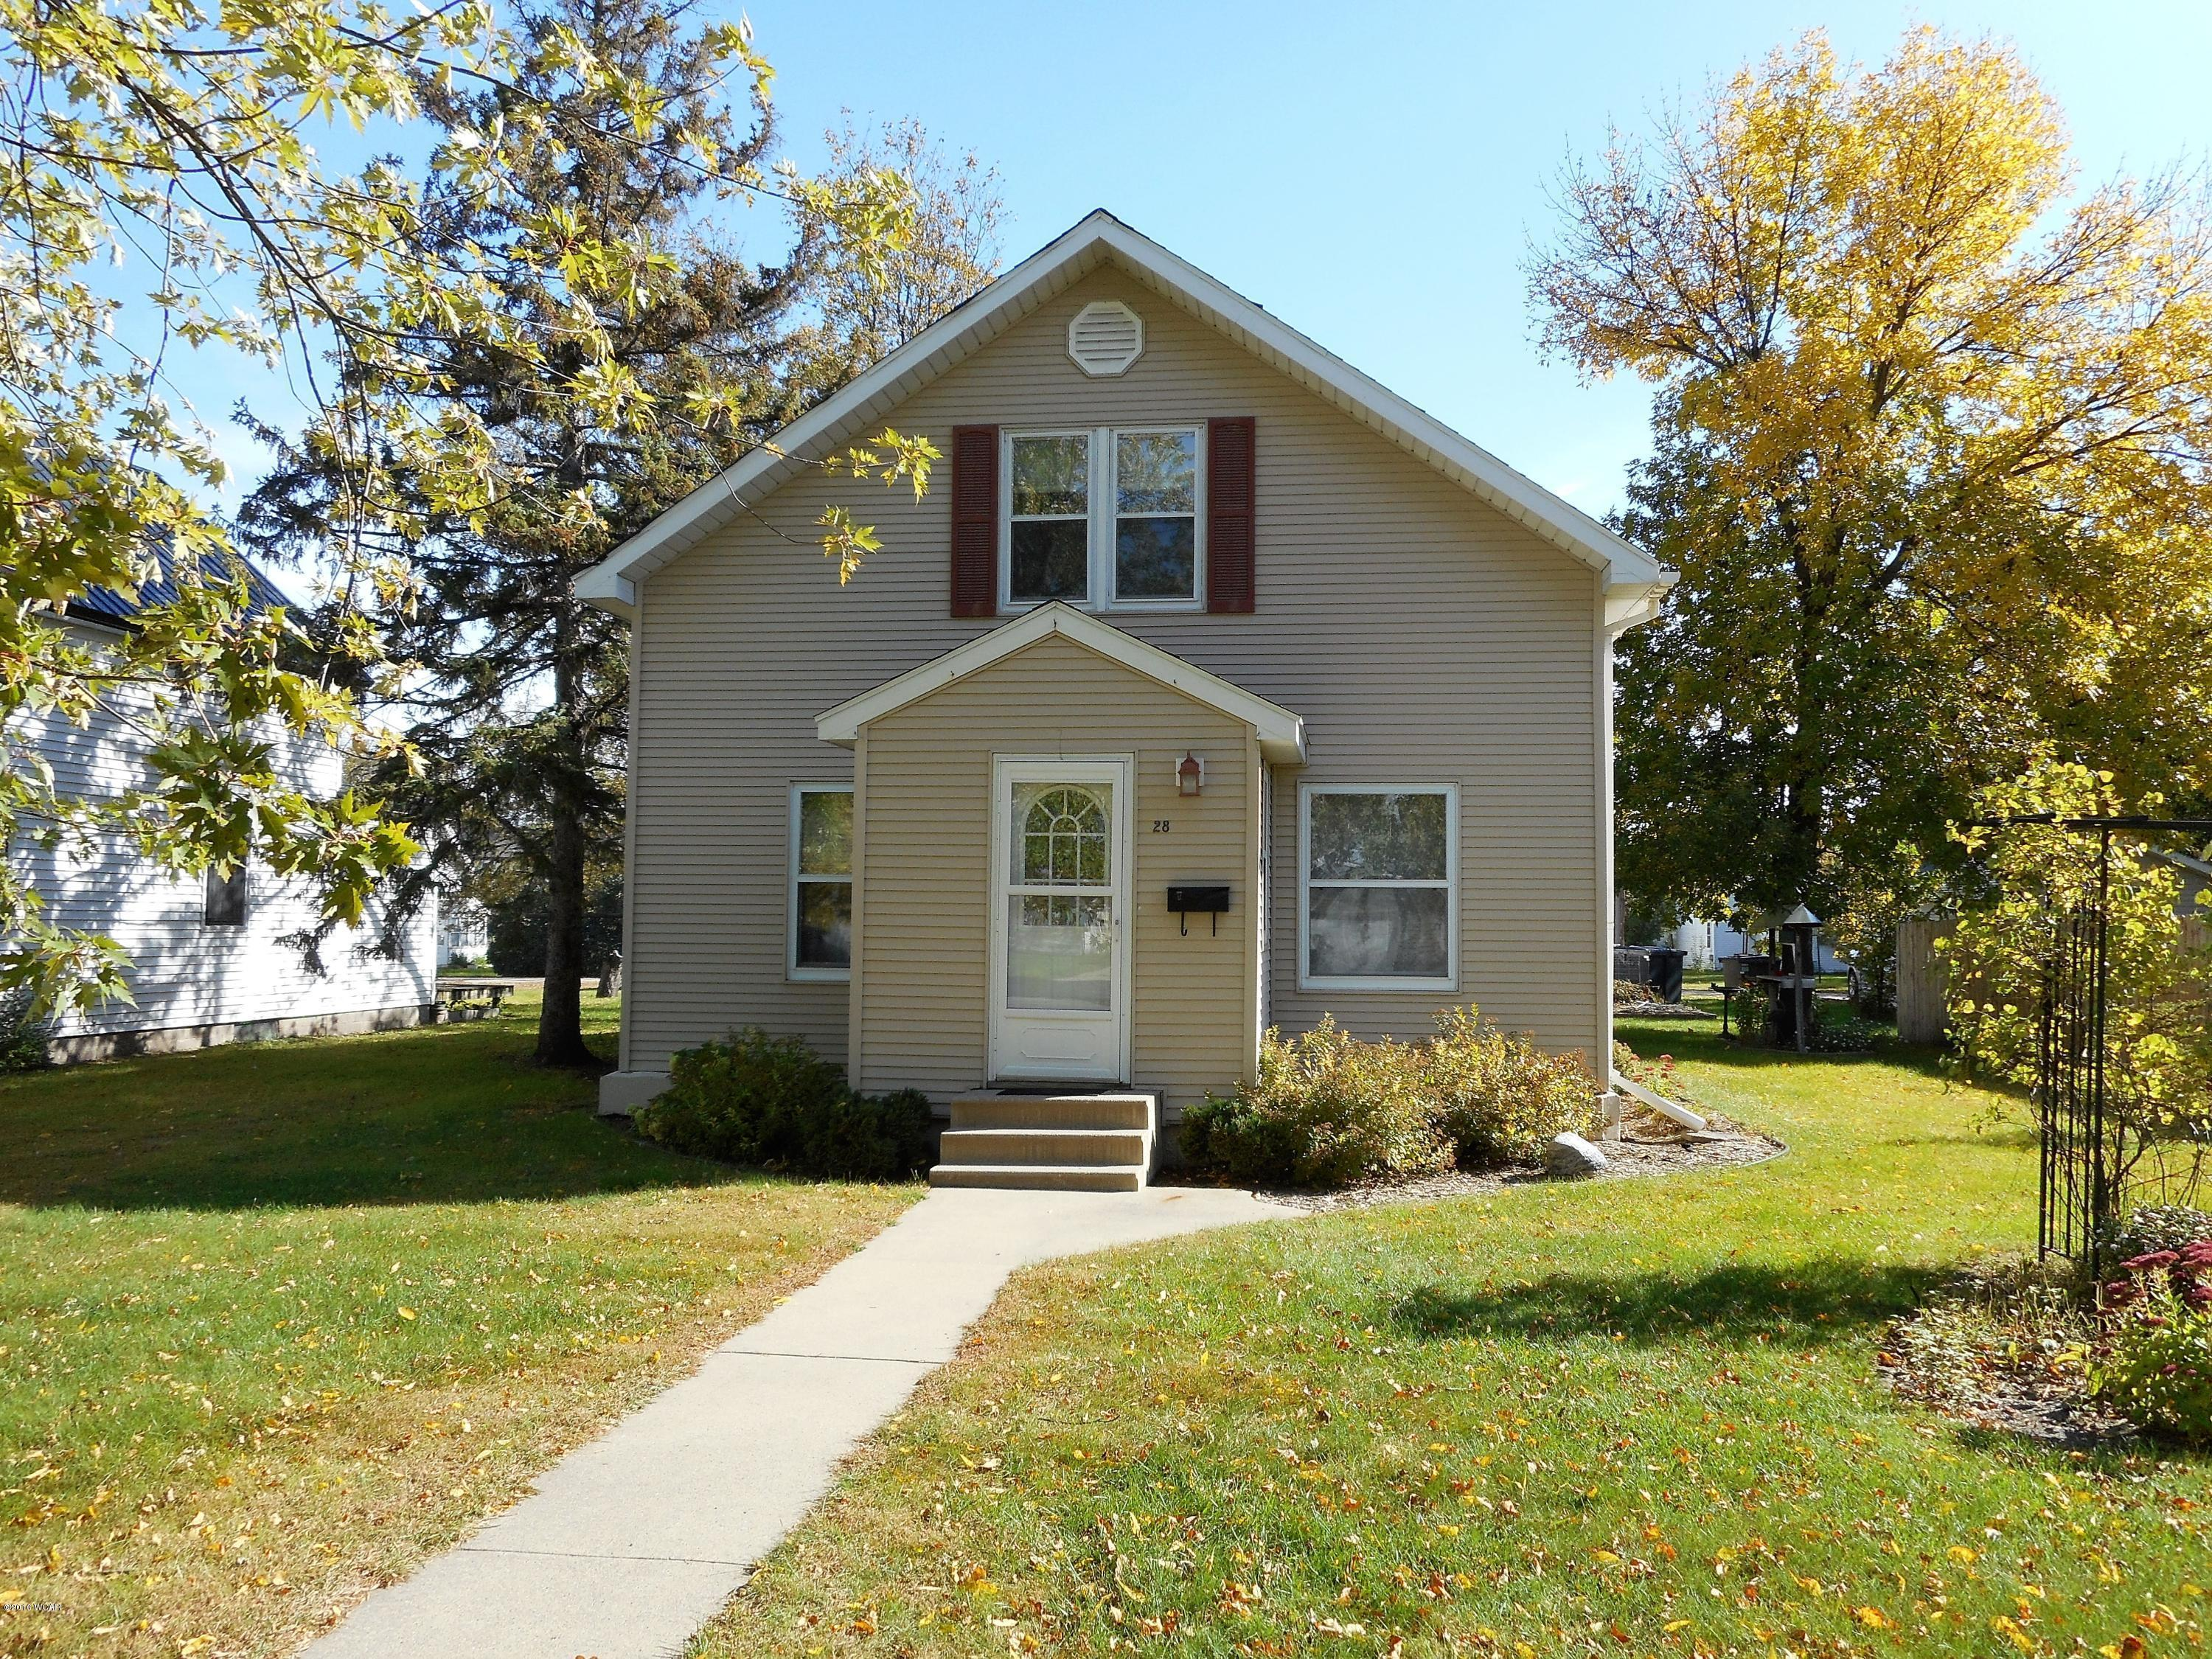 28 S Nelson Street Property Photo - Appleton, MN real estate listing